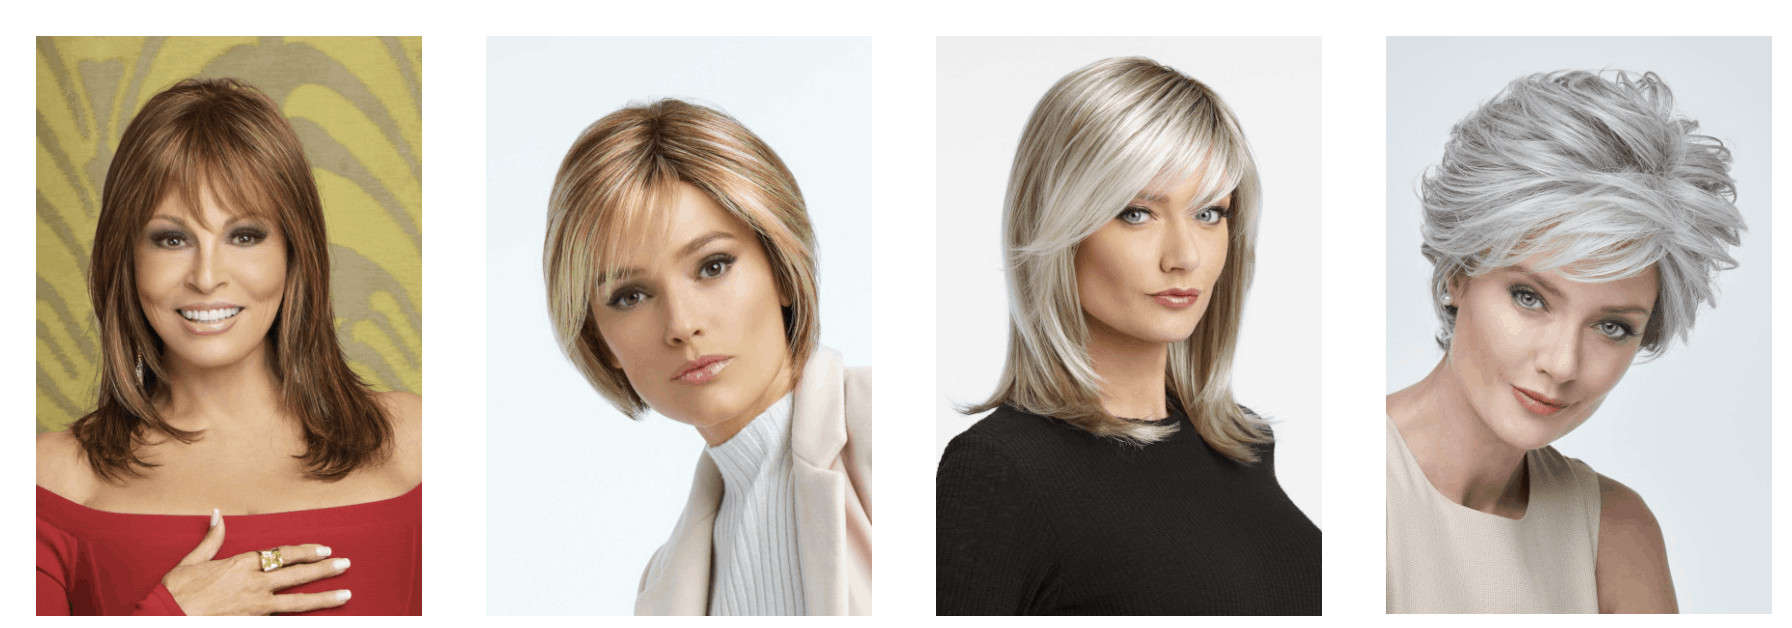 Wigs with bangs